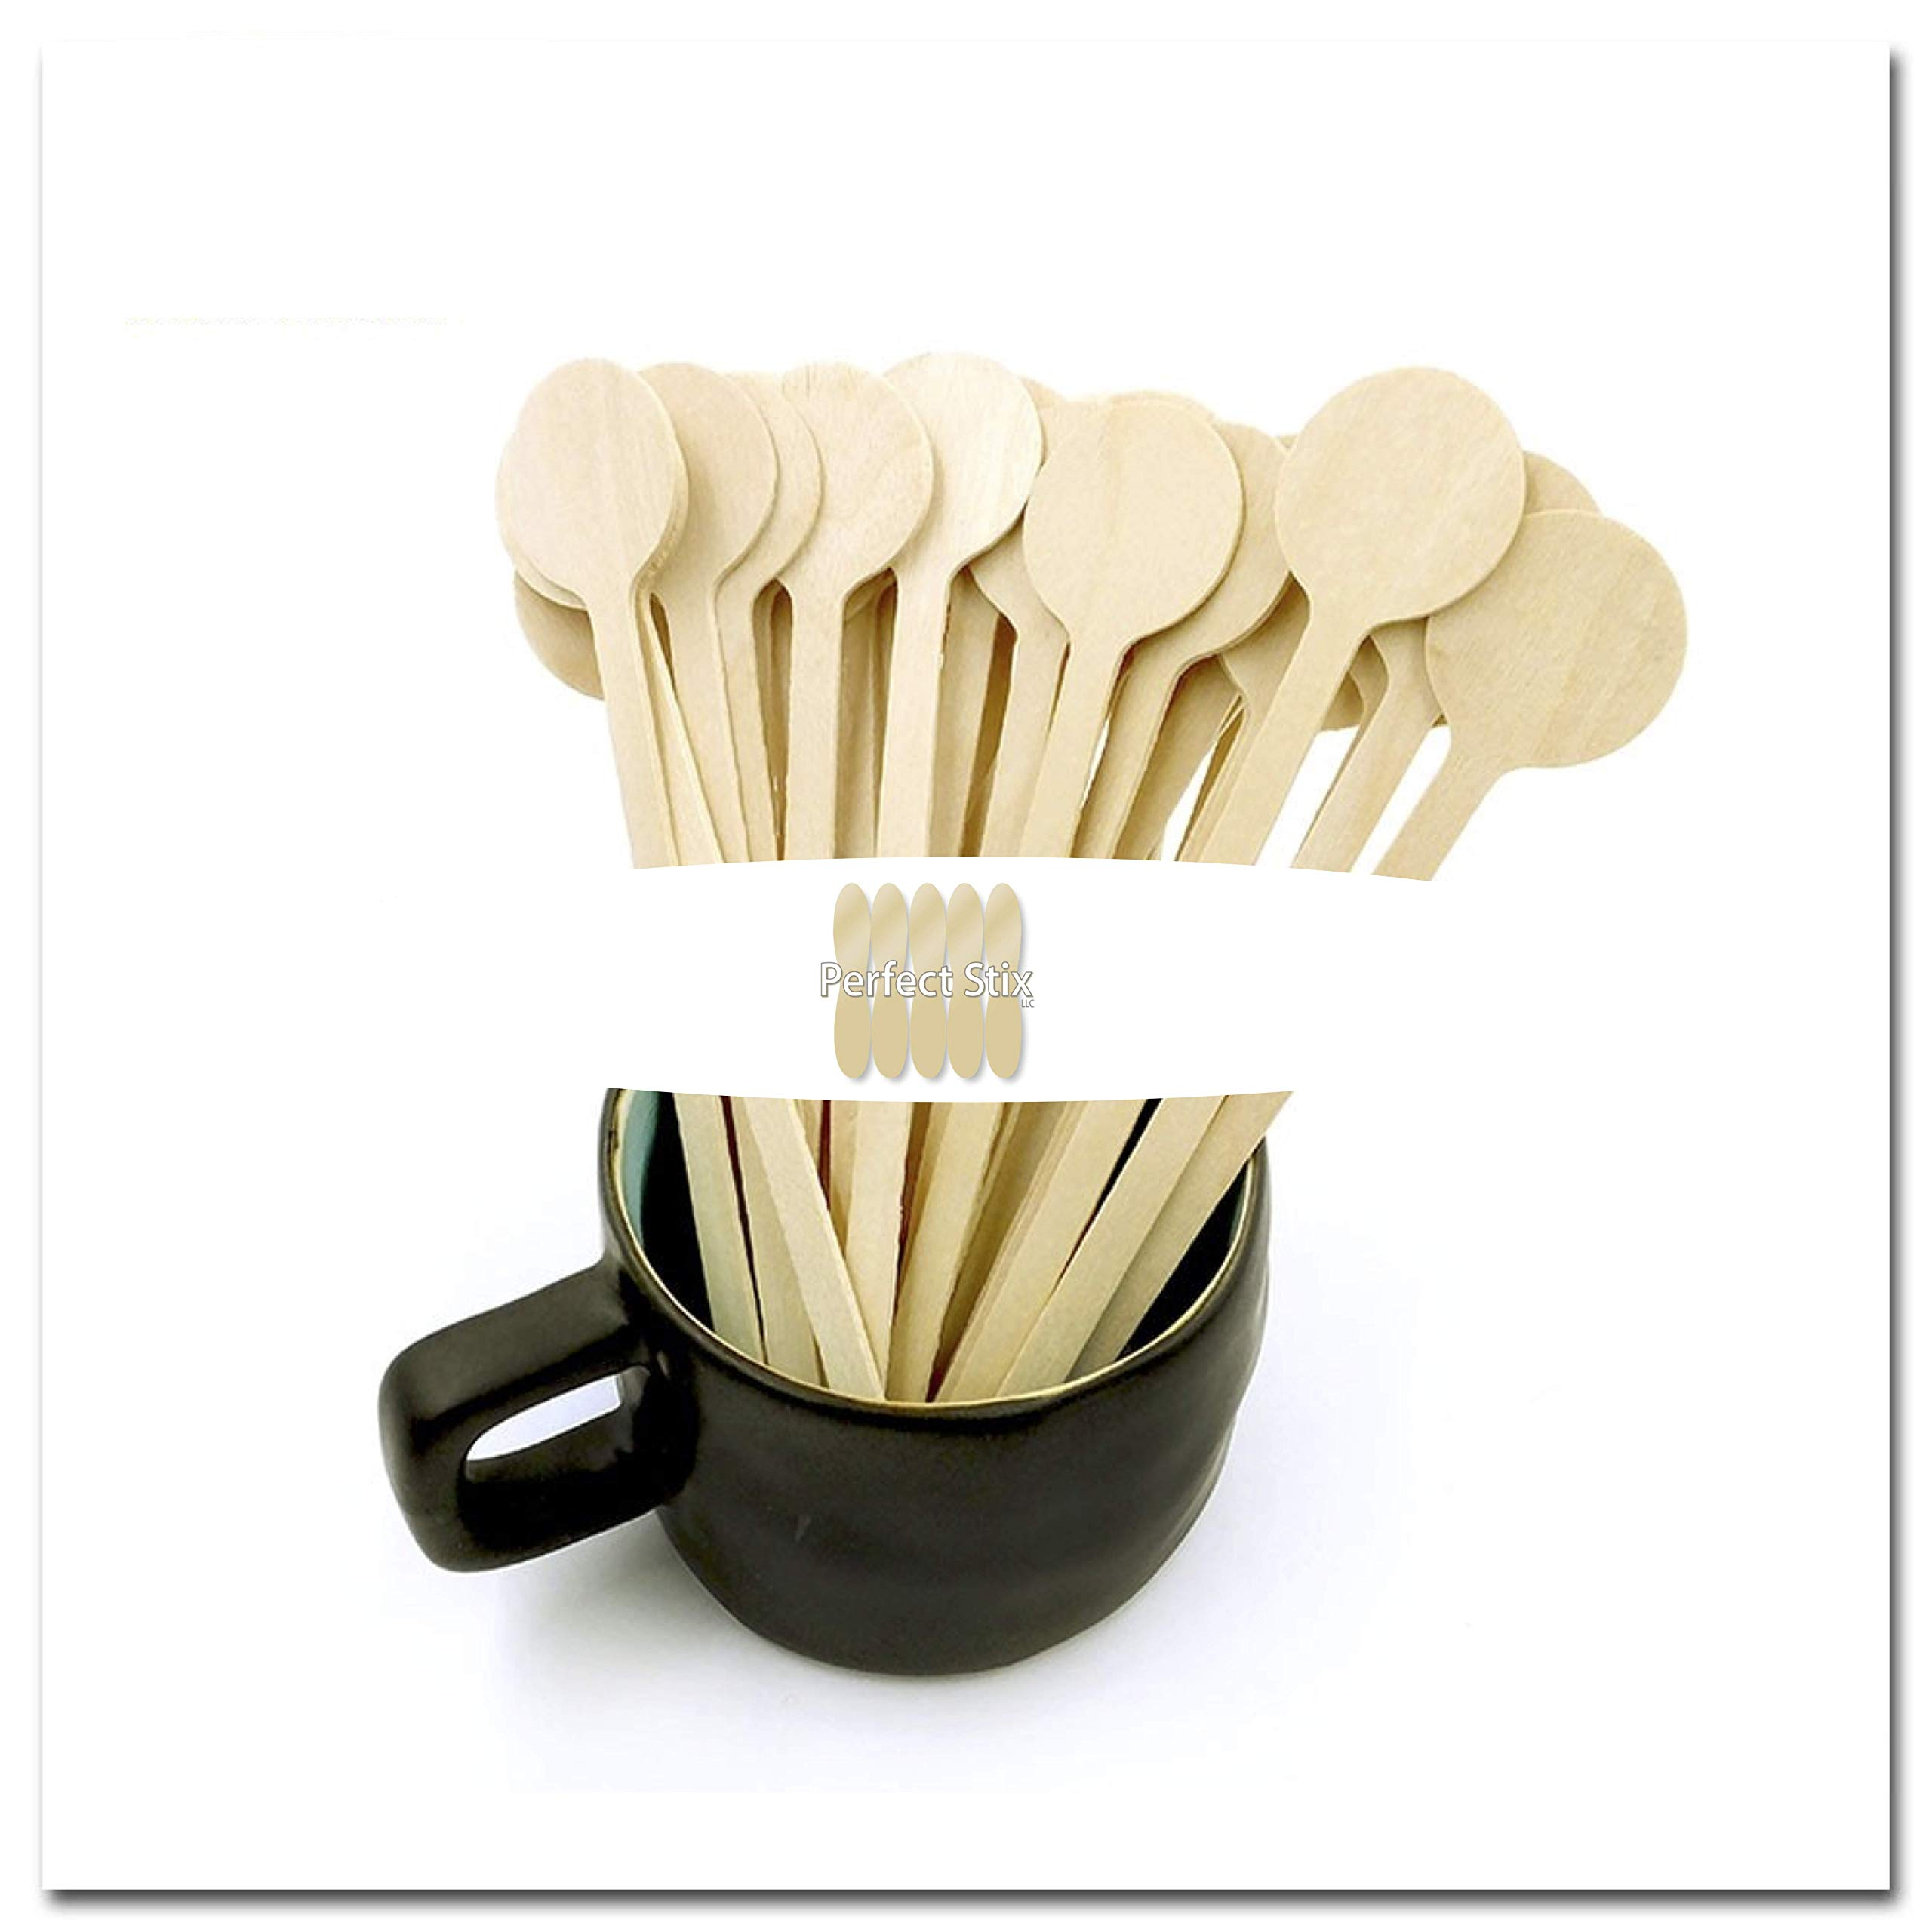 Perfect Stix Cocktail 6 Round -100ct Wooden Cocktail/Coffee Stirrers with Round Head, 6'' (Pack of 100)